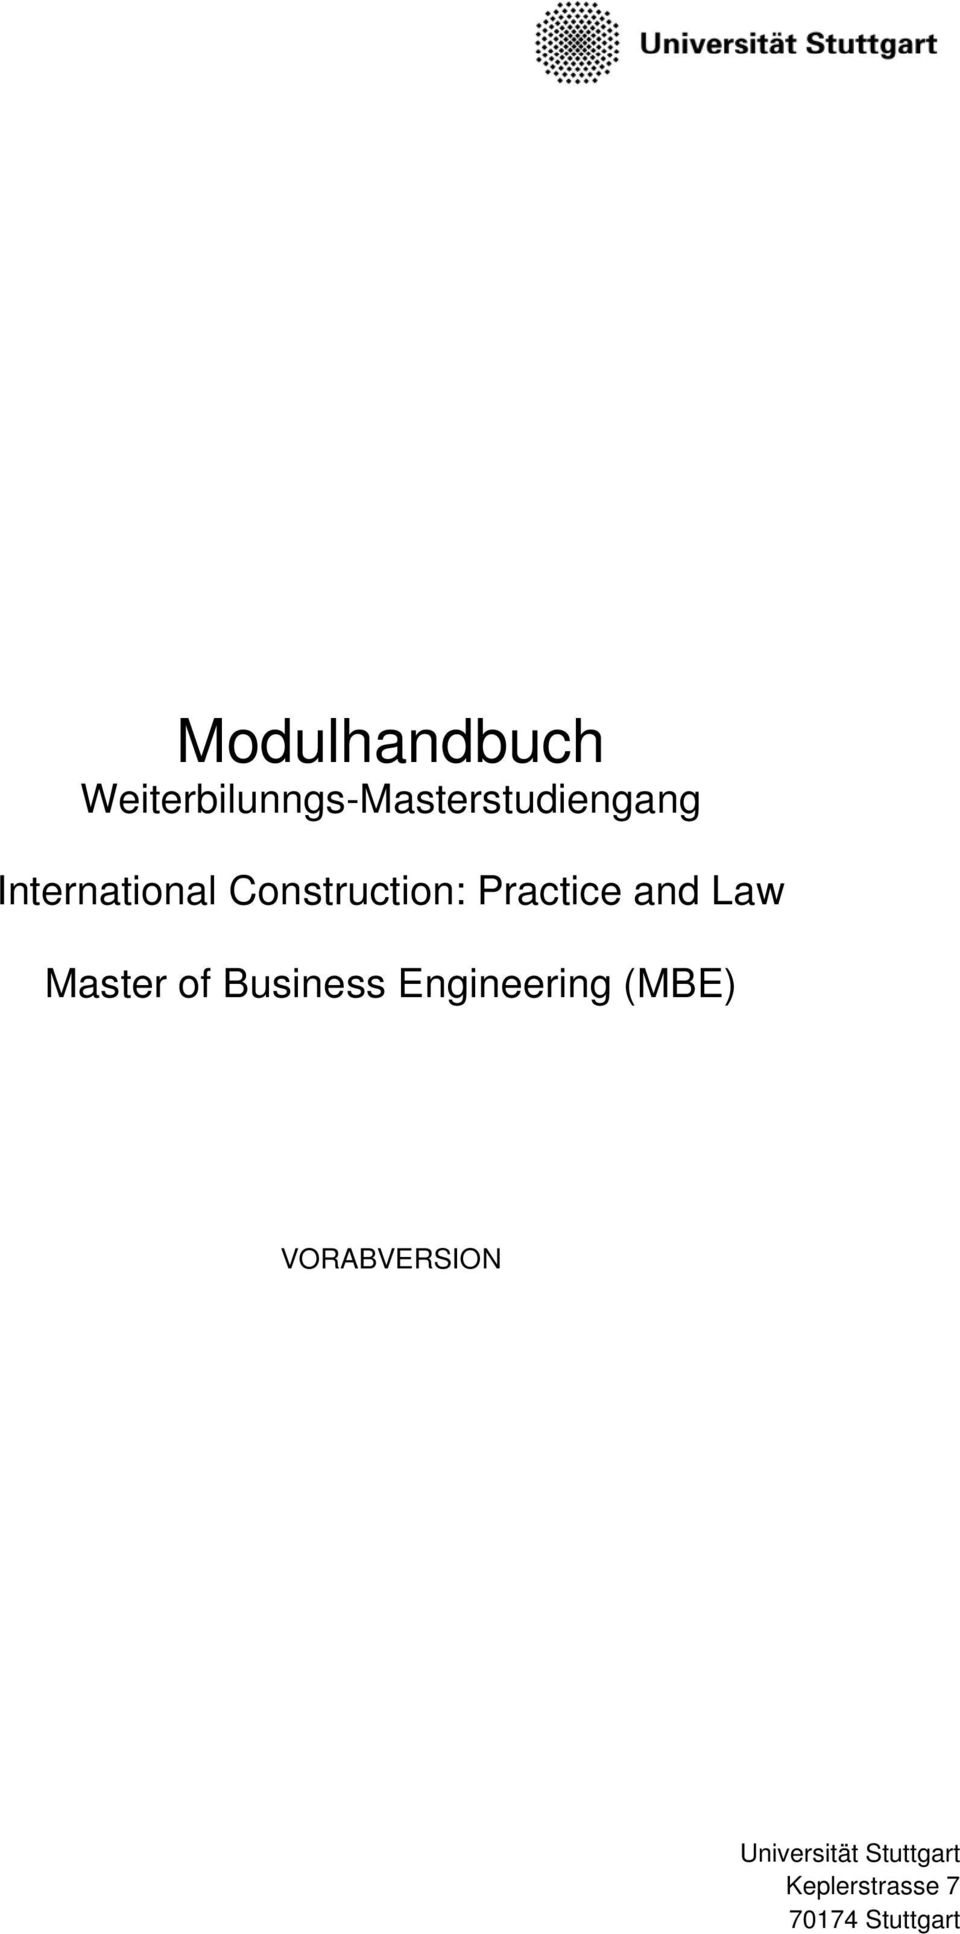 Master of Business Engineering (MBE)